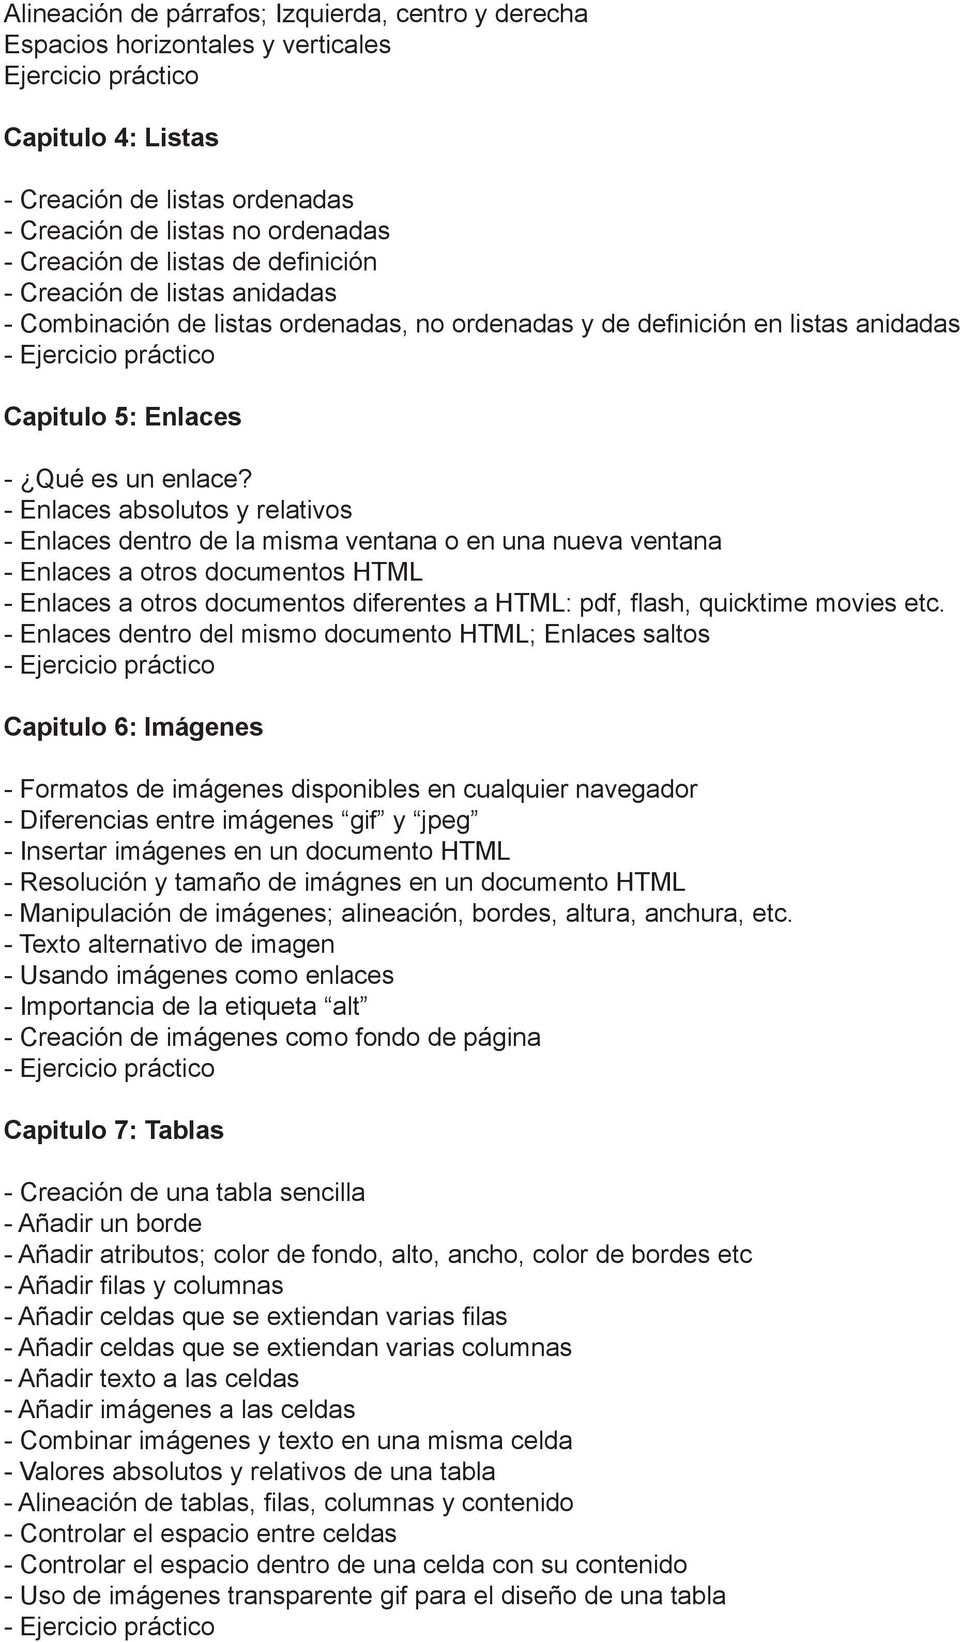 - Enlaces absolutos y relativos - Enlaces dentro de la misma ventana o en una nueva ventana - Enlaces a otros documentos HTML - Enlaces a otros documentos diferentes a HTML: pdf, flash, quicktime